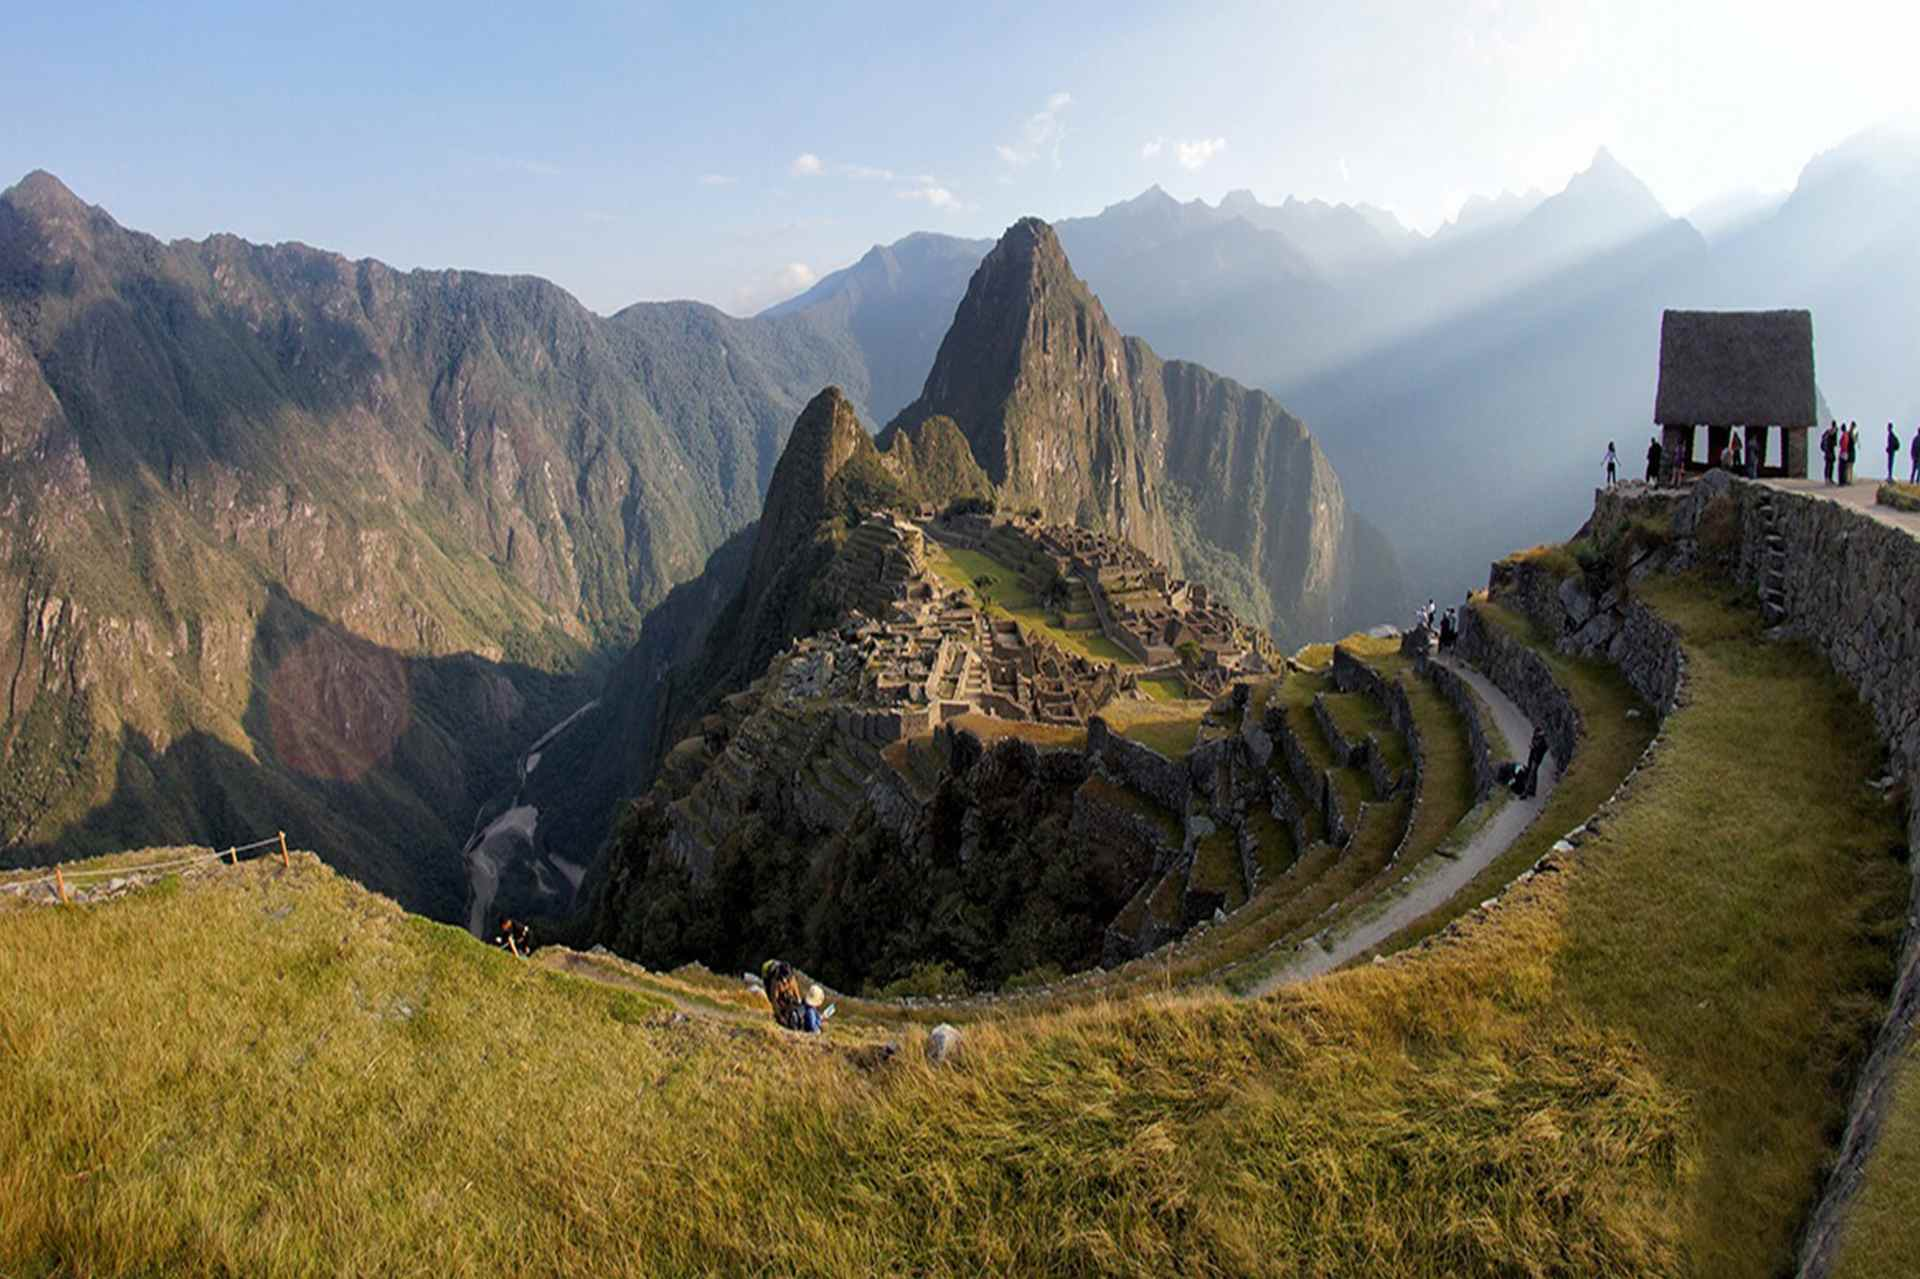 Travel to Machu Picchu 1 day by train - Inca Trail Salkantay Trek